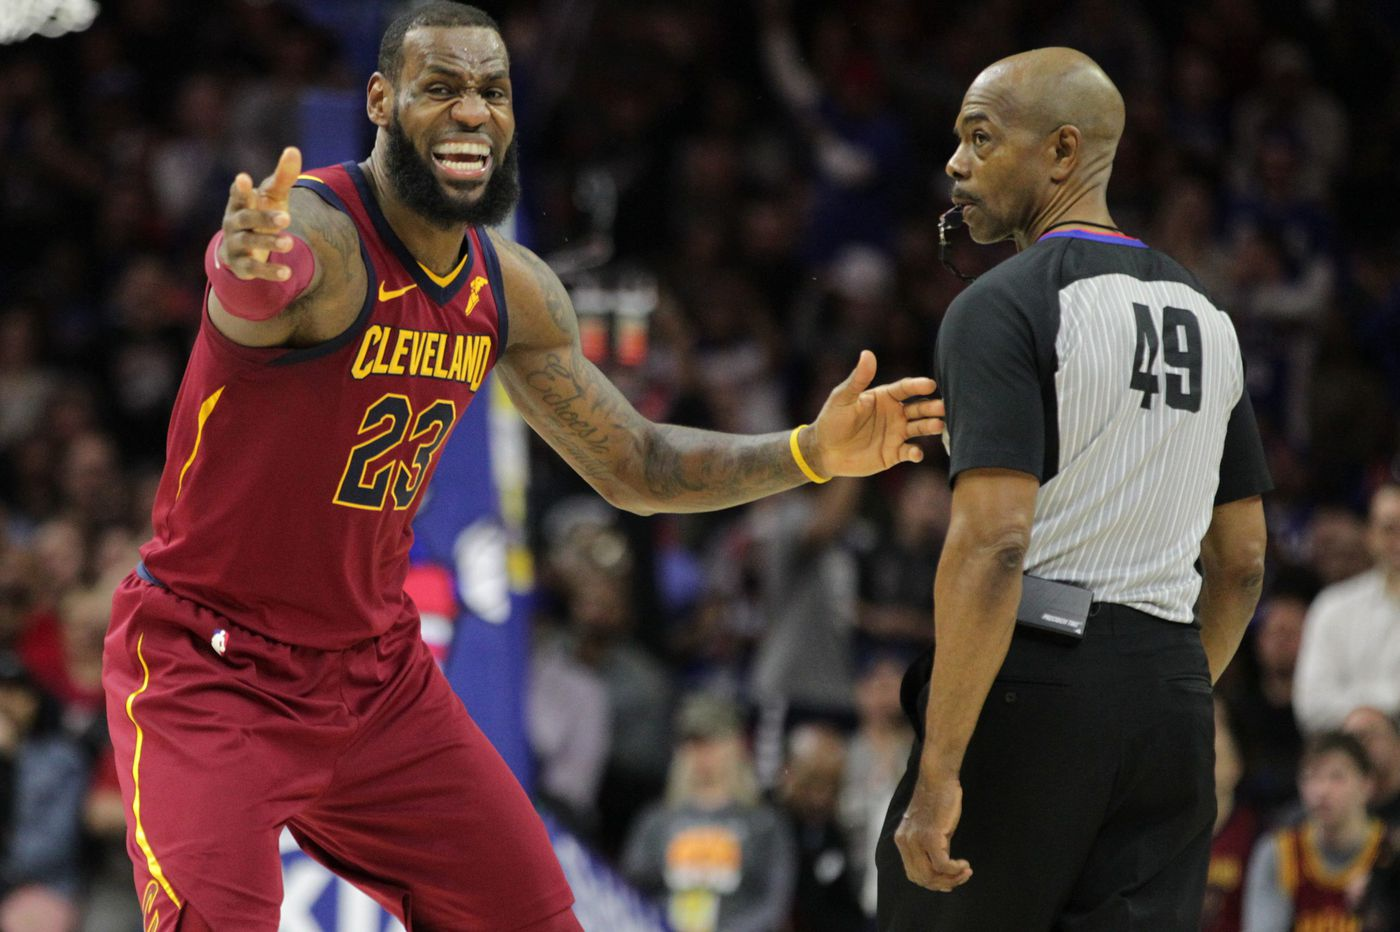 LeBron James is joining Paul George in free agency. What are the Sixers' chances of landing one of them?